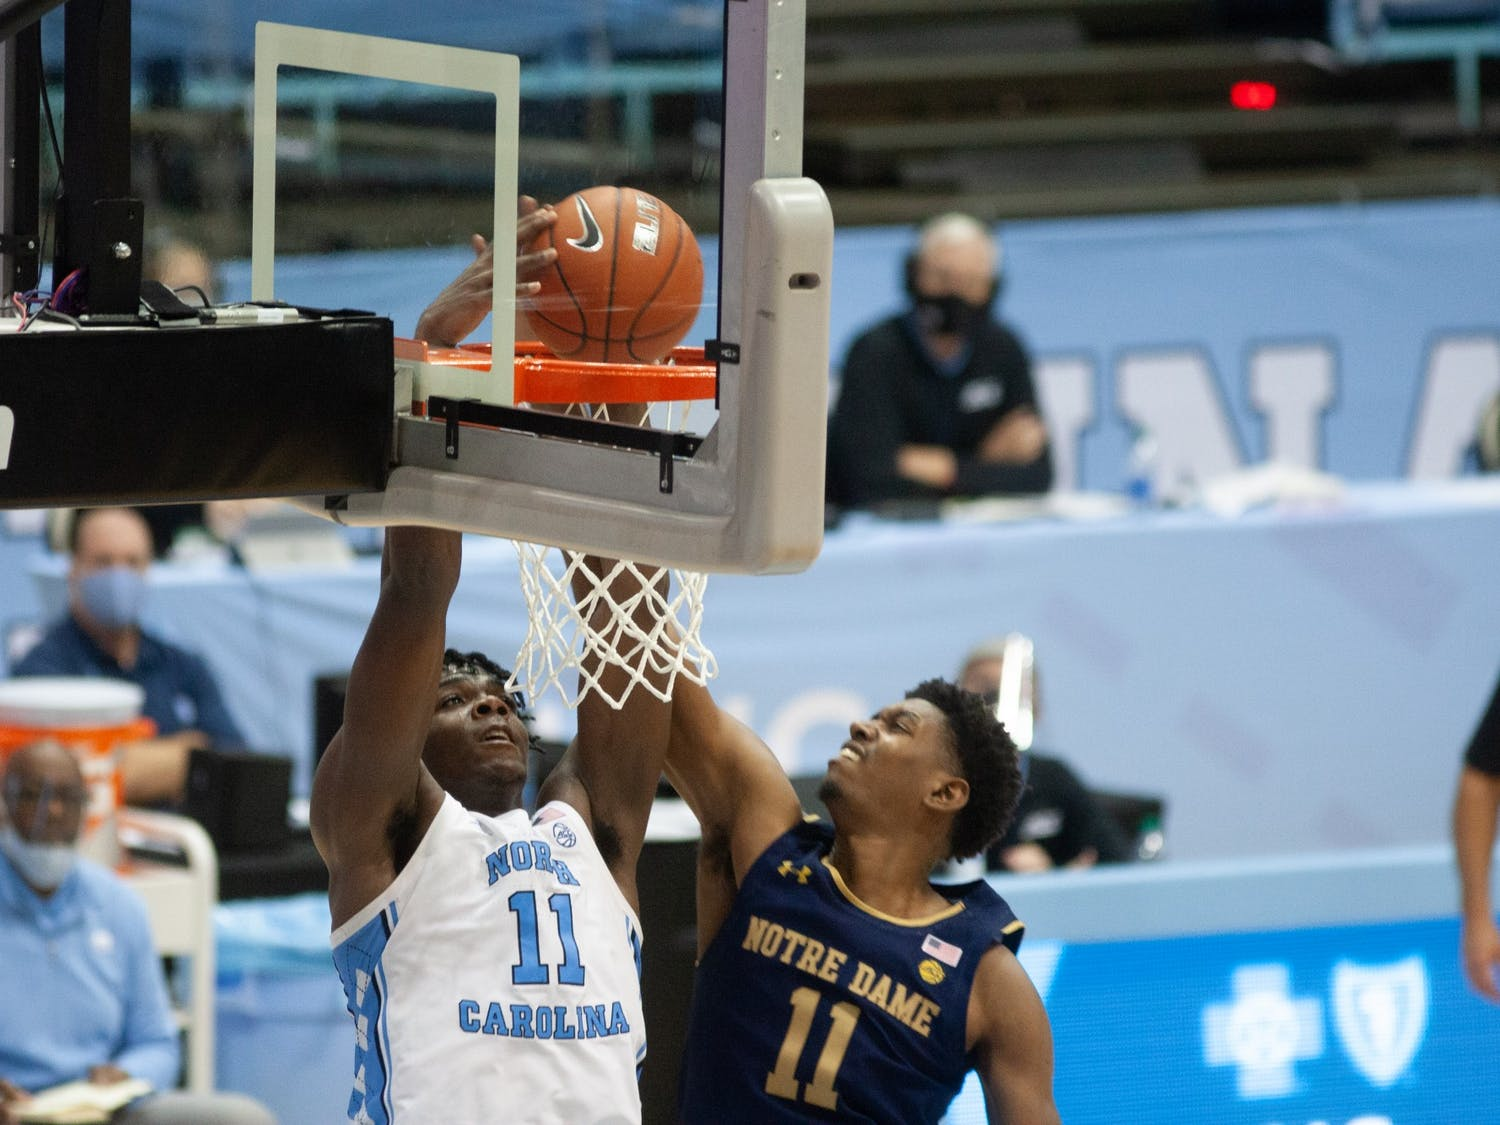 UNC first year forward Day'Ron Sharpe (11) flushes home a go-ahead dunk late in Carolina's 66-65 win over Notre Dame at the Dean E. Smith Center on Saturday, Jan. 2, 2021.